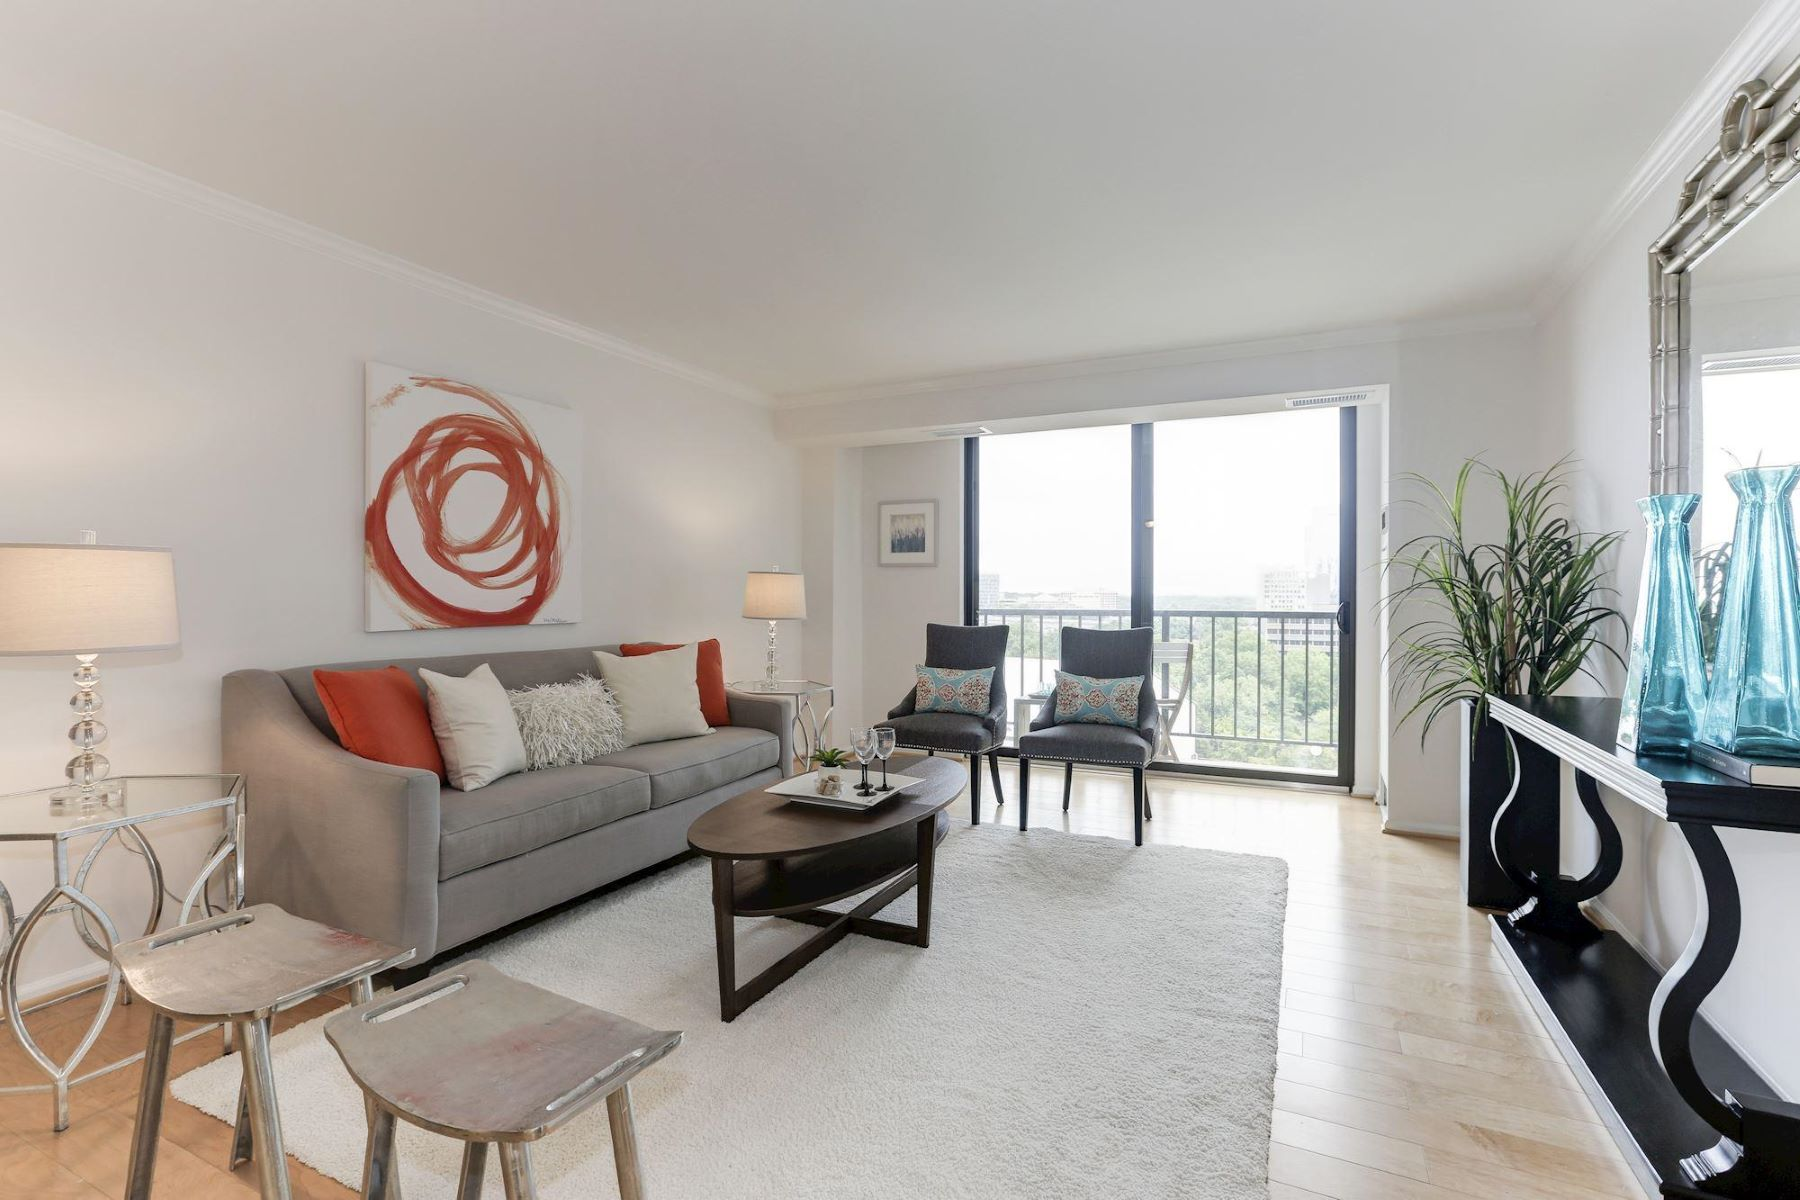 Other Residential for Sale at 1800 Old Meadow Rd #915 1800 Old Meadow Rd #915 McLean, Virginia 22102 United States